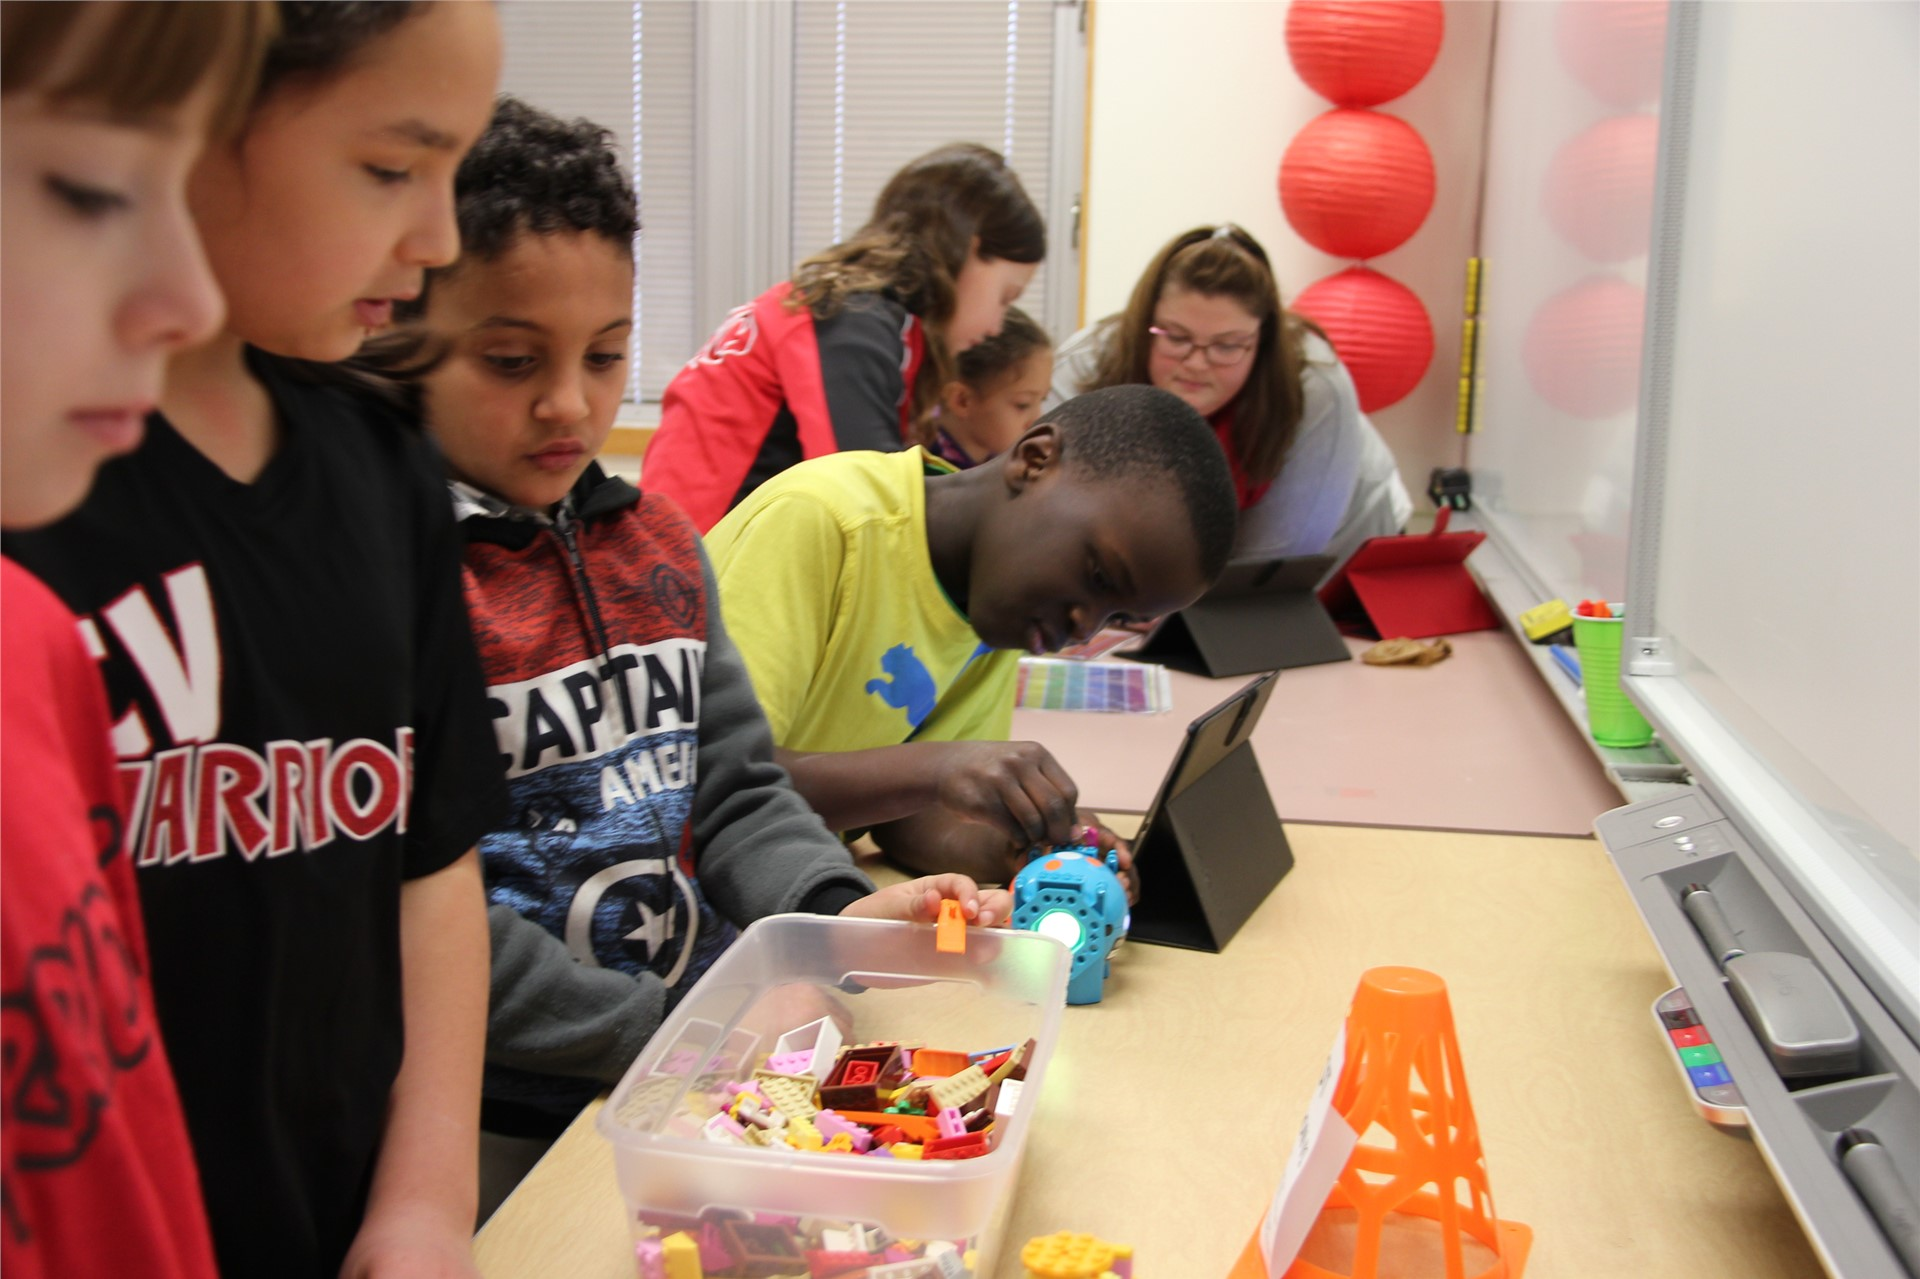 students work on projects at table